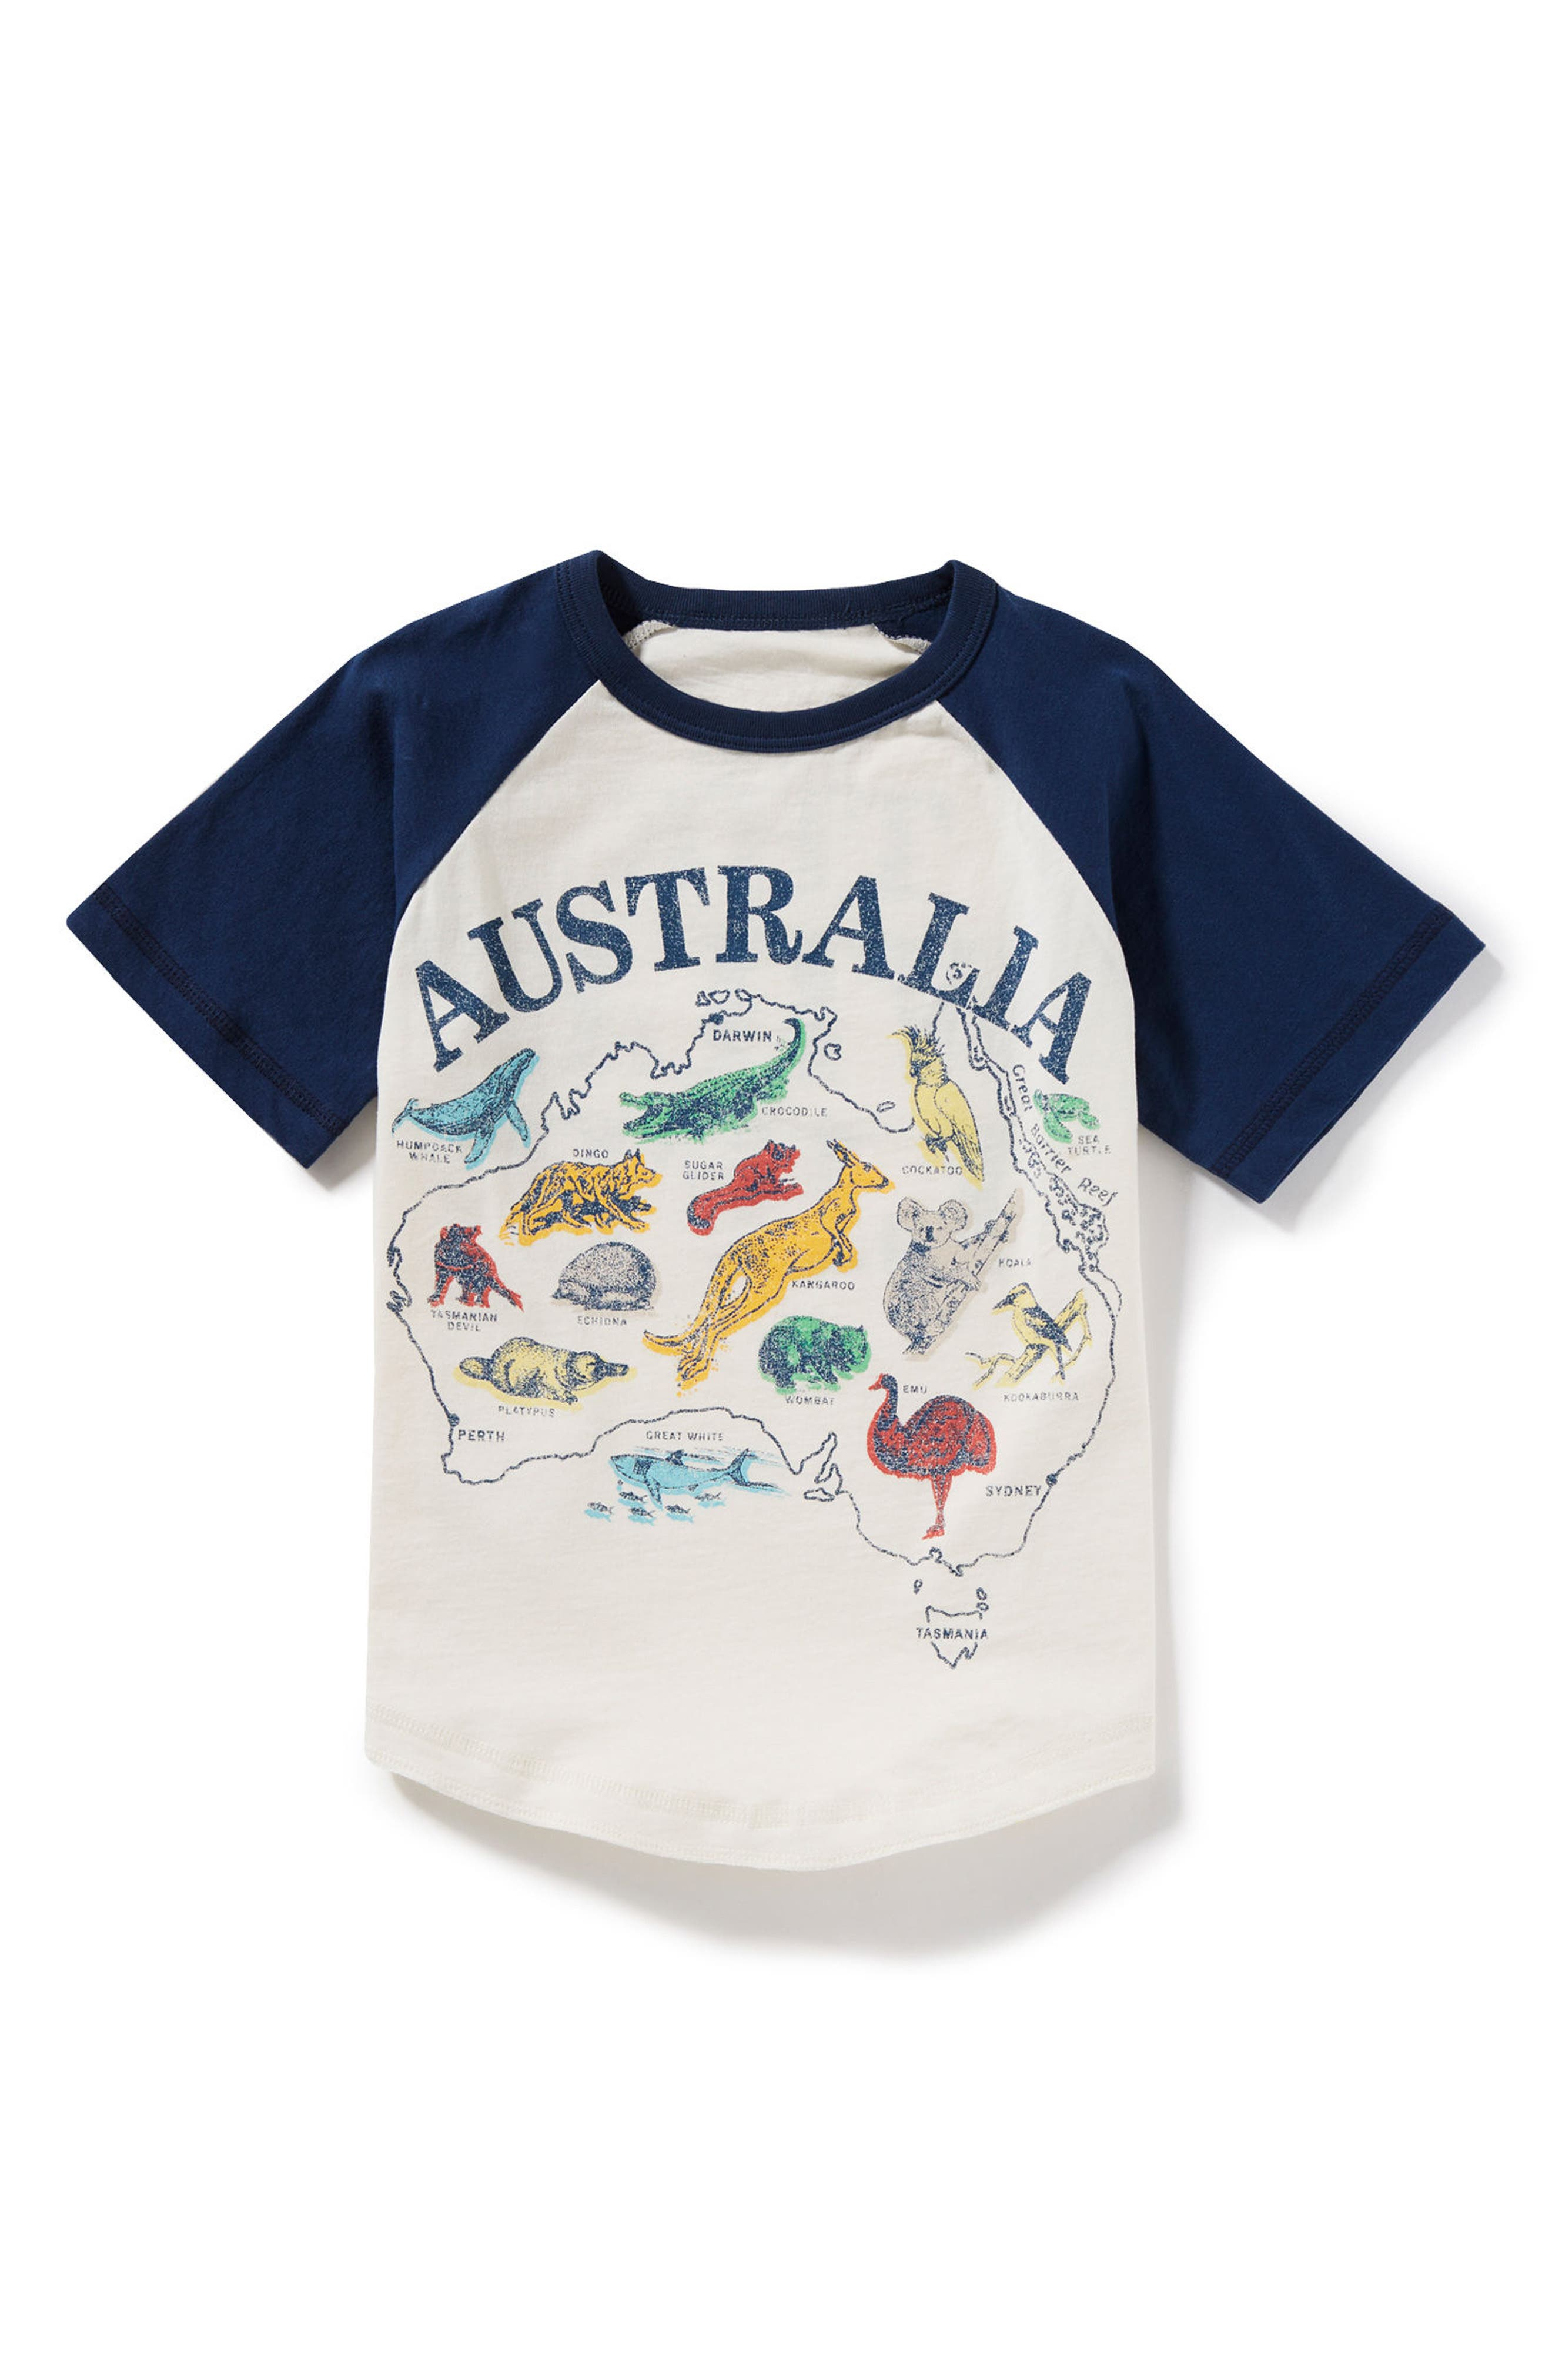 Australia Raglan T-Shirt,                             Main thumbnail 1, color,                             900